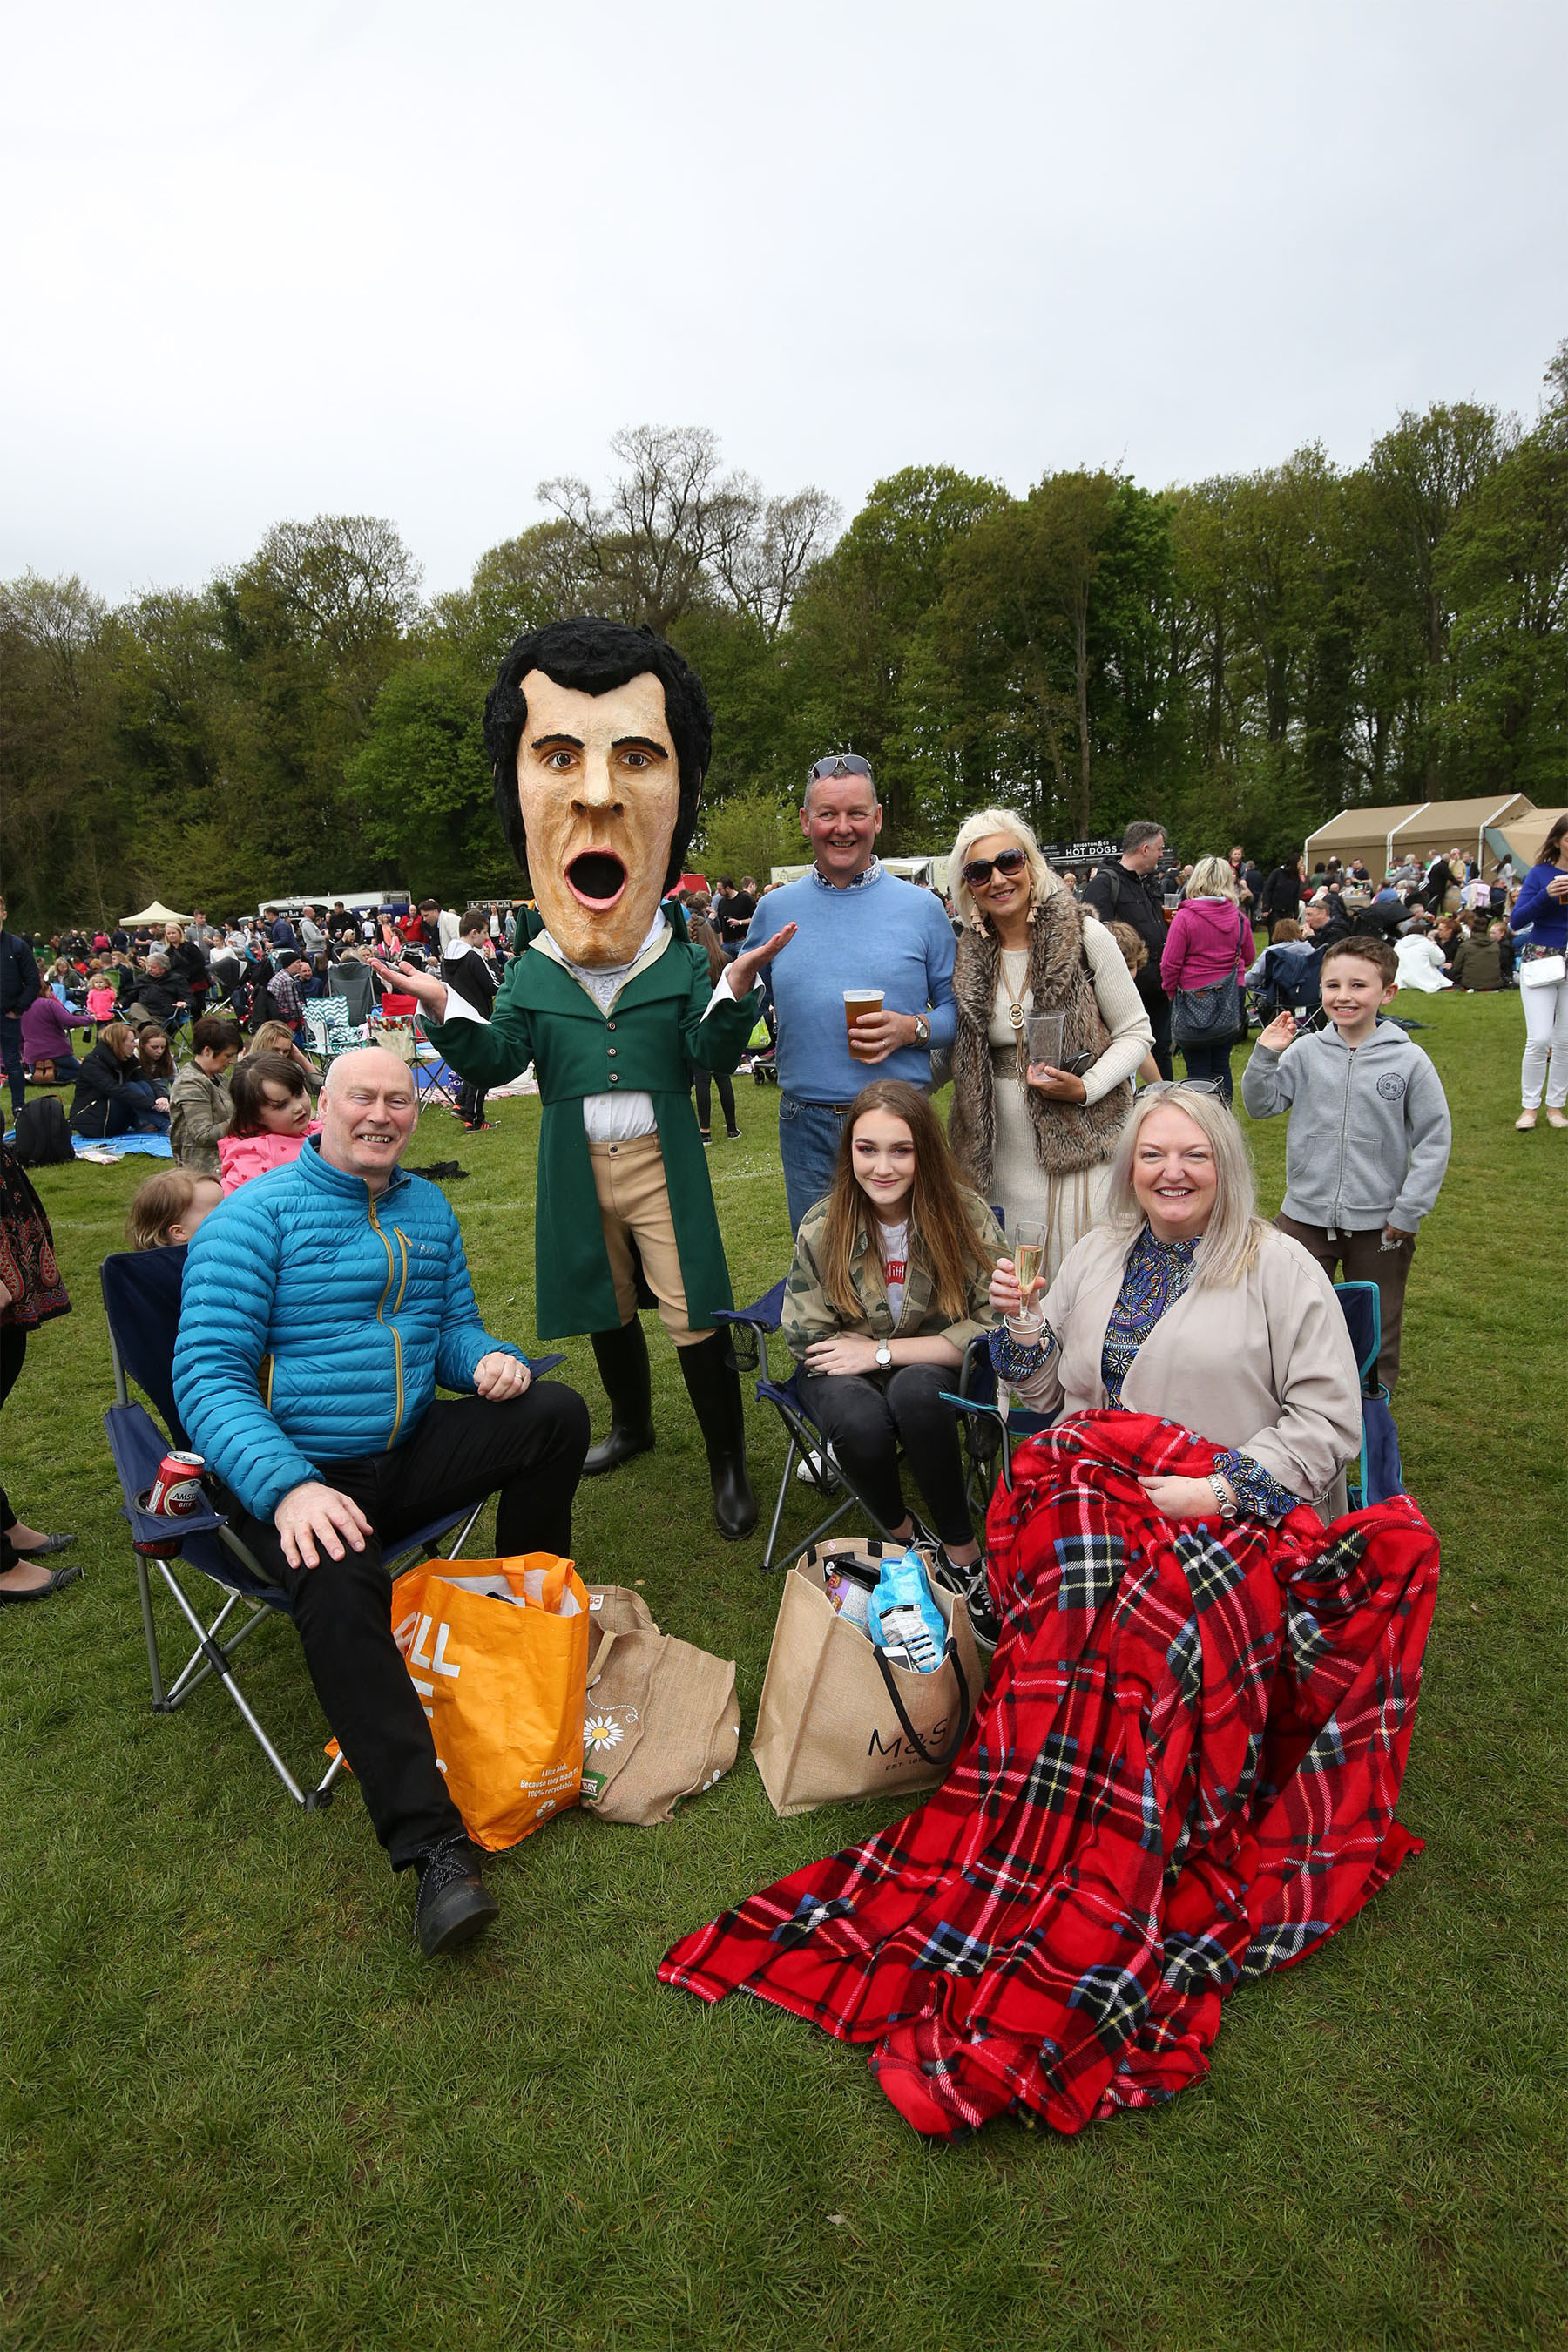 Picnic in the park at the brilliant 2018 Burnsfest